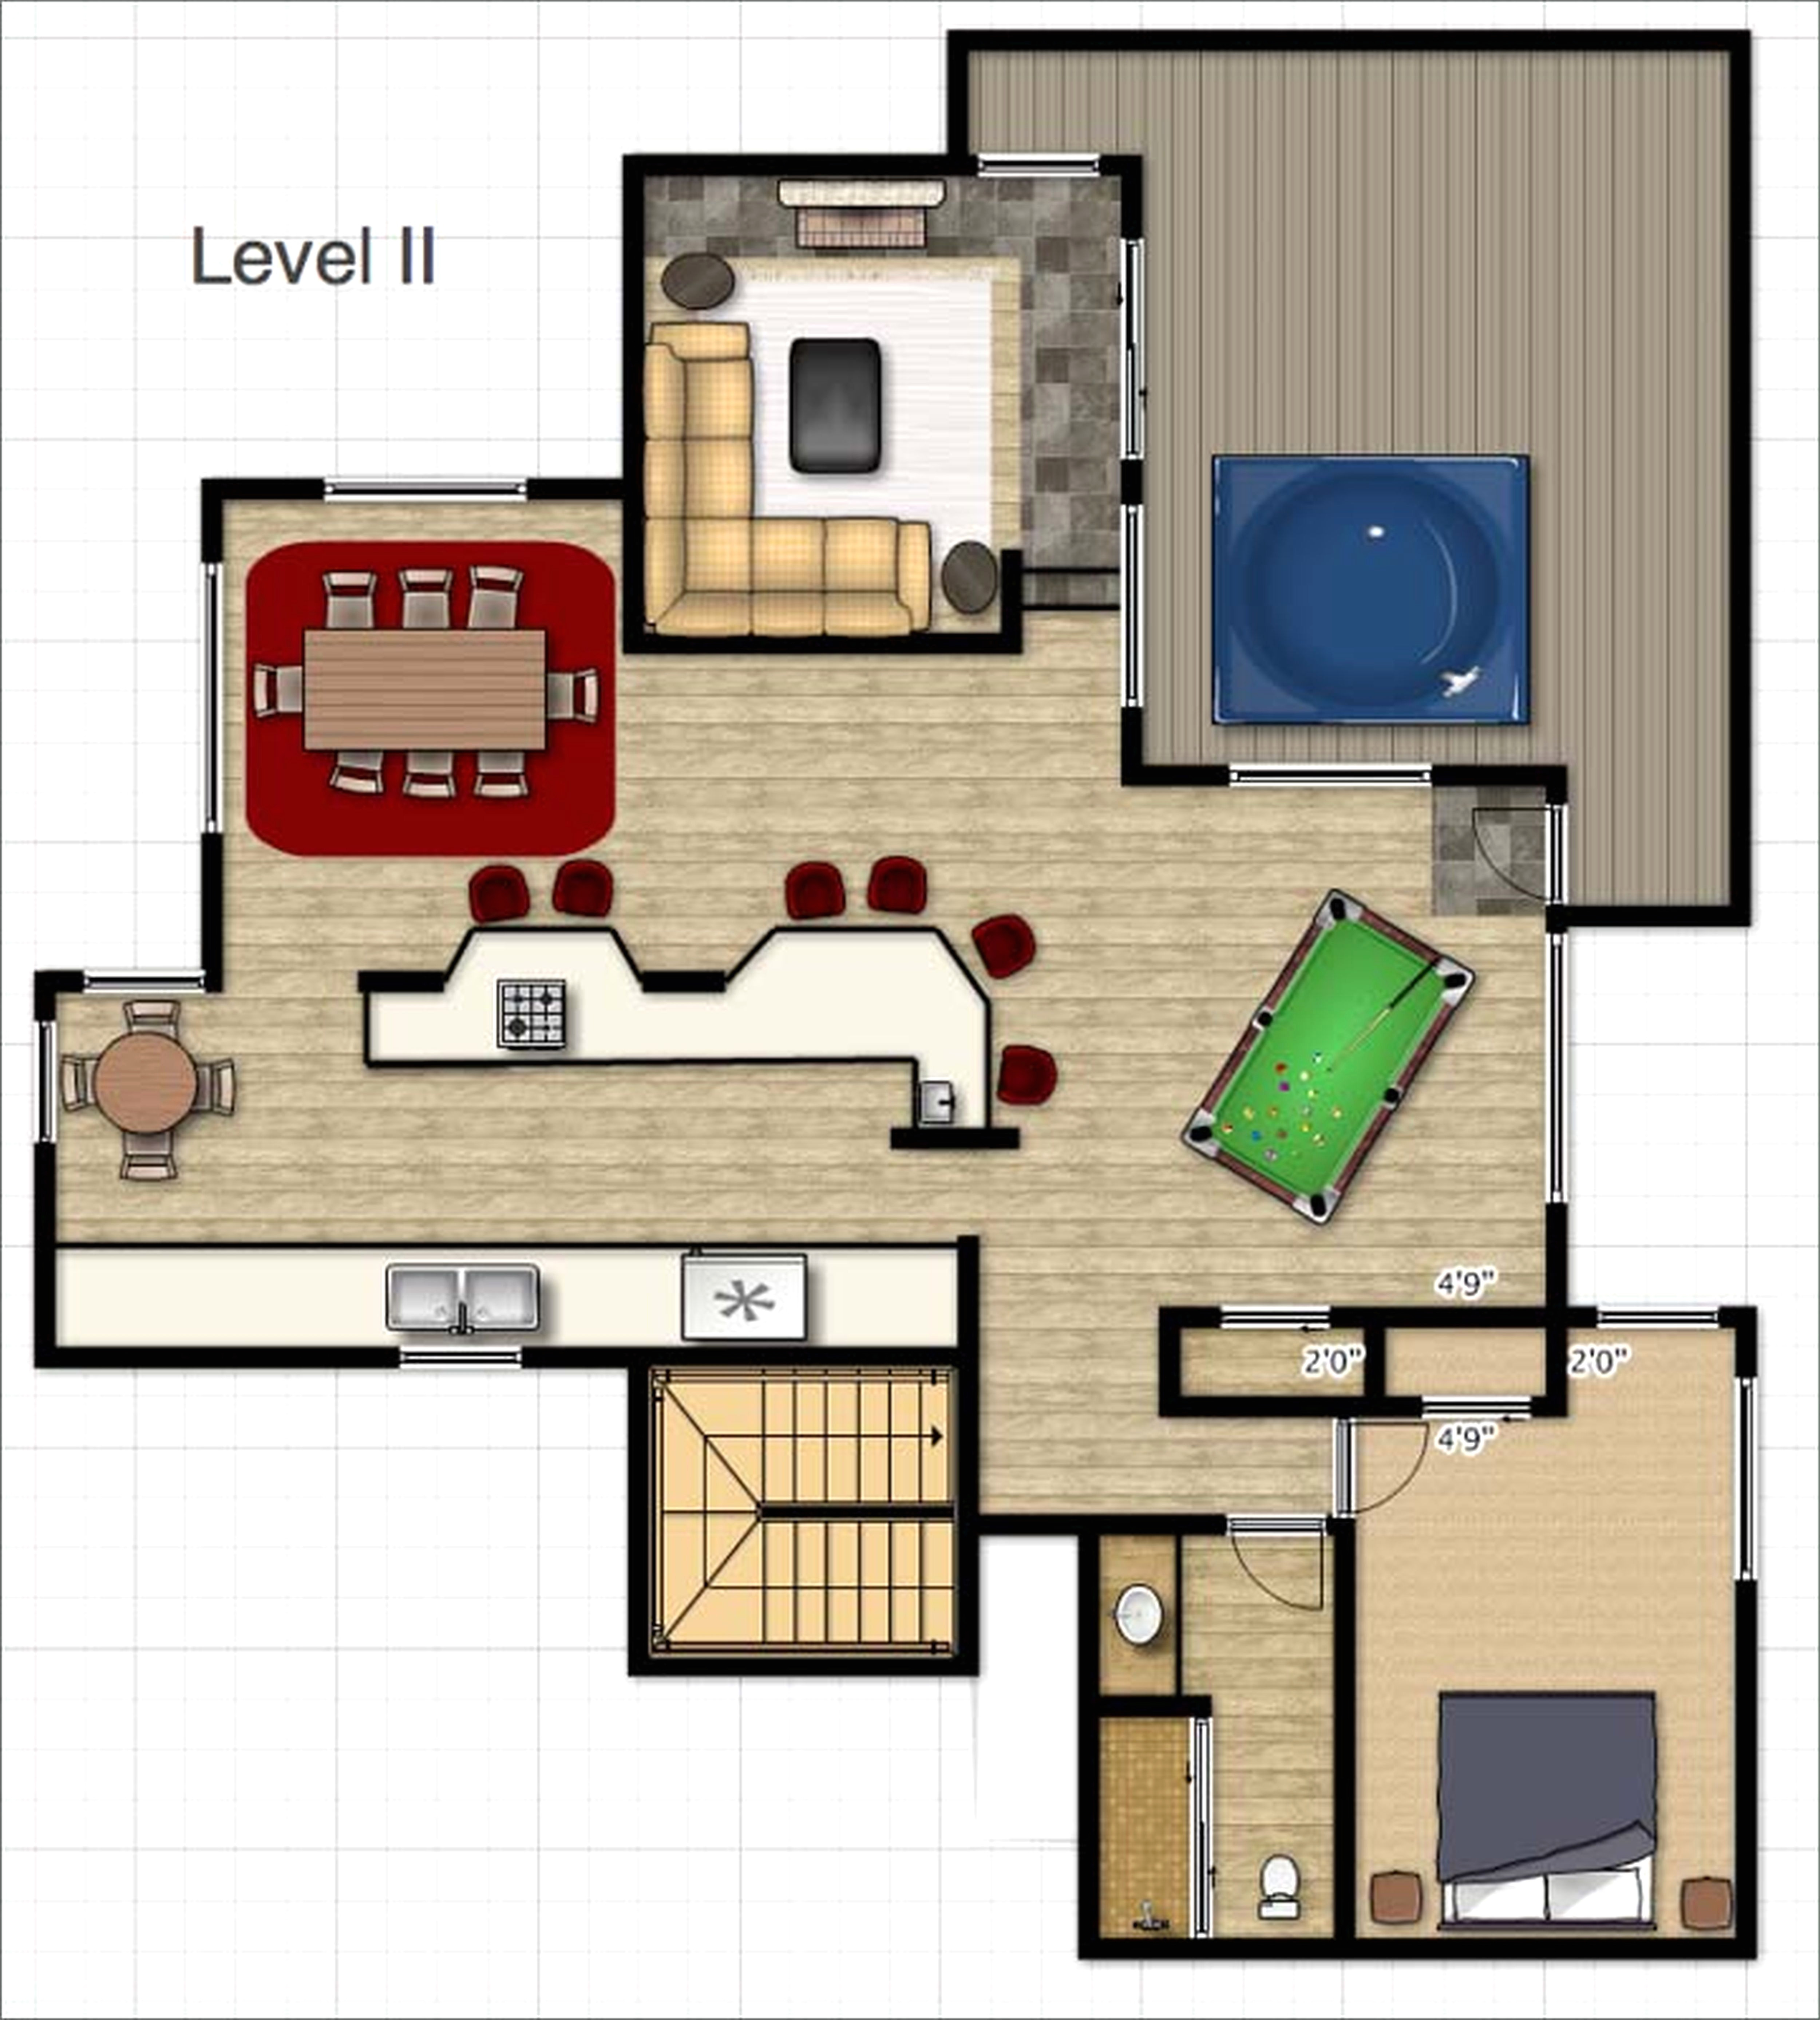 draw house plans app inspirational house plan drawing apps beautiful how to draw house plans